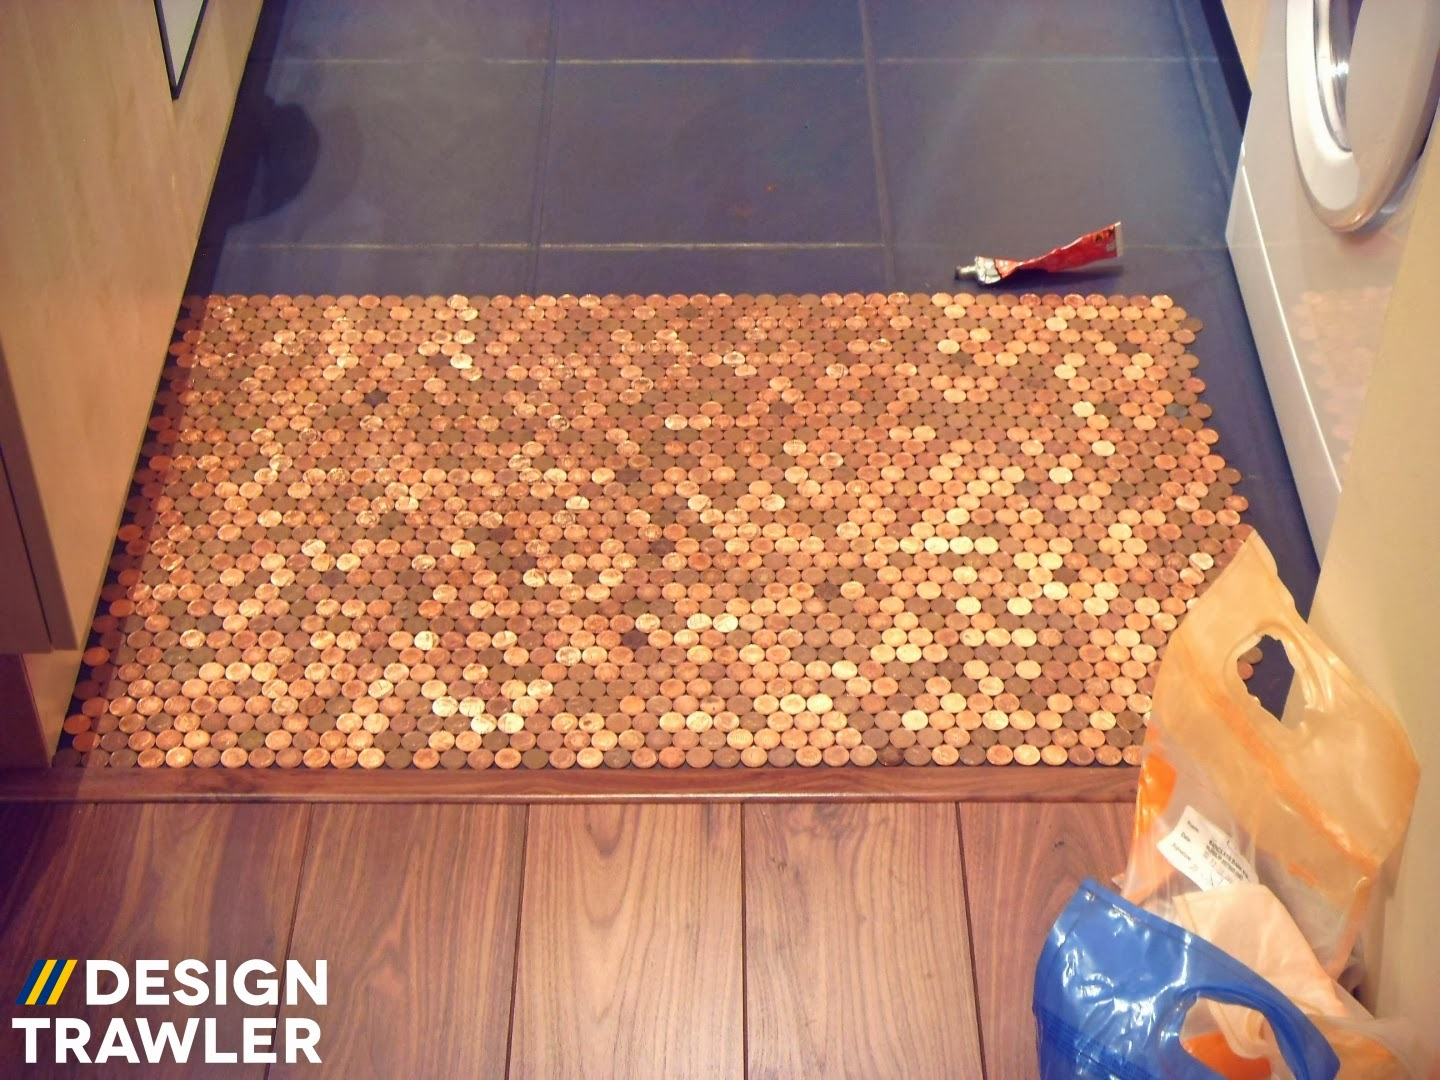 Design Trawler The Penny Floor That Started A Craze